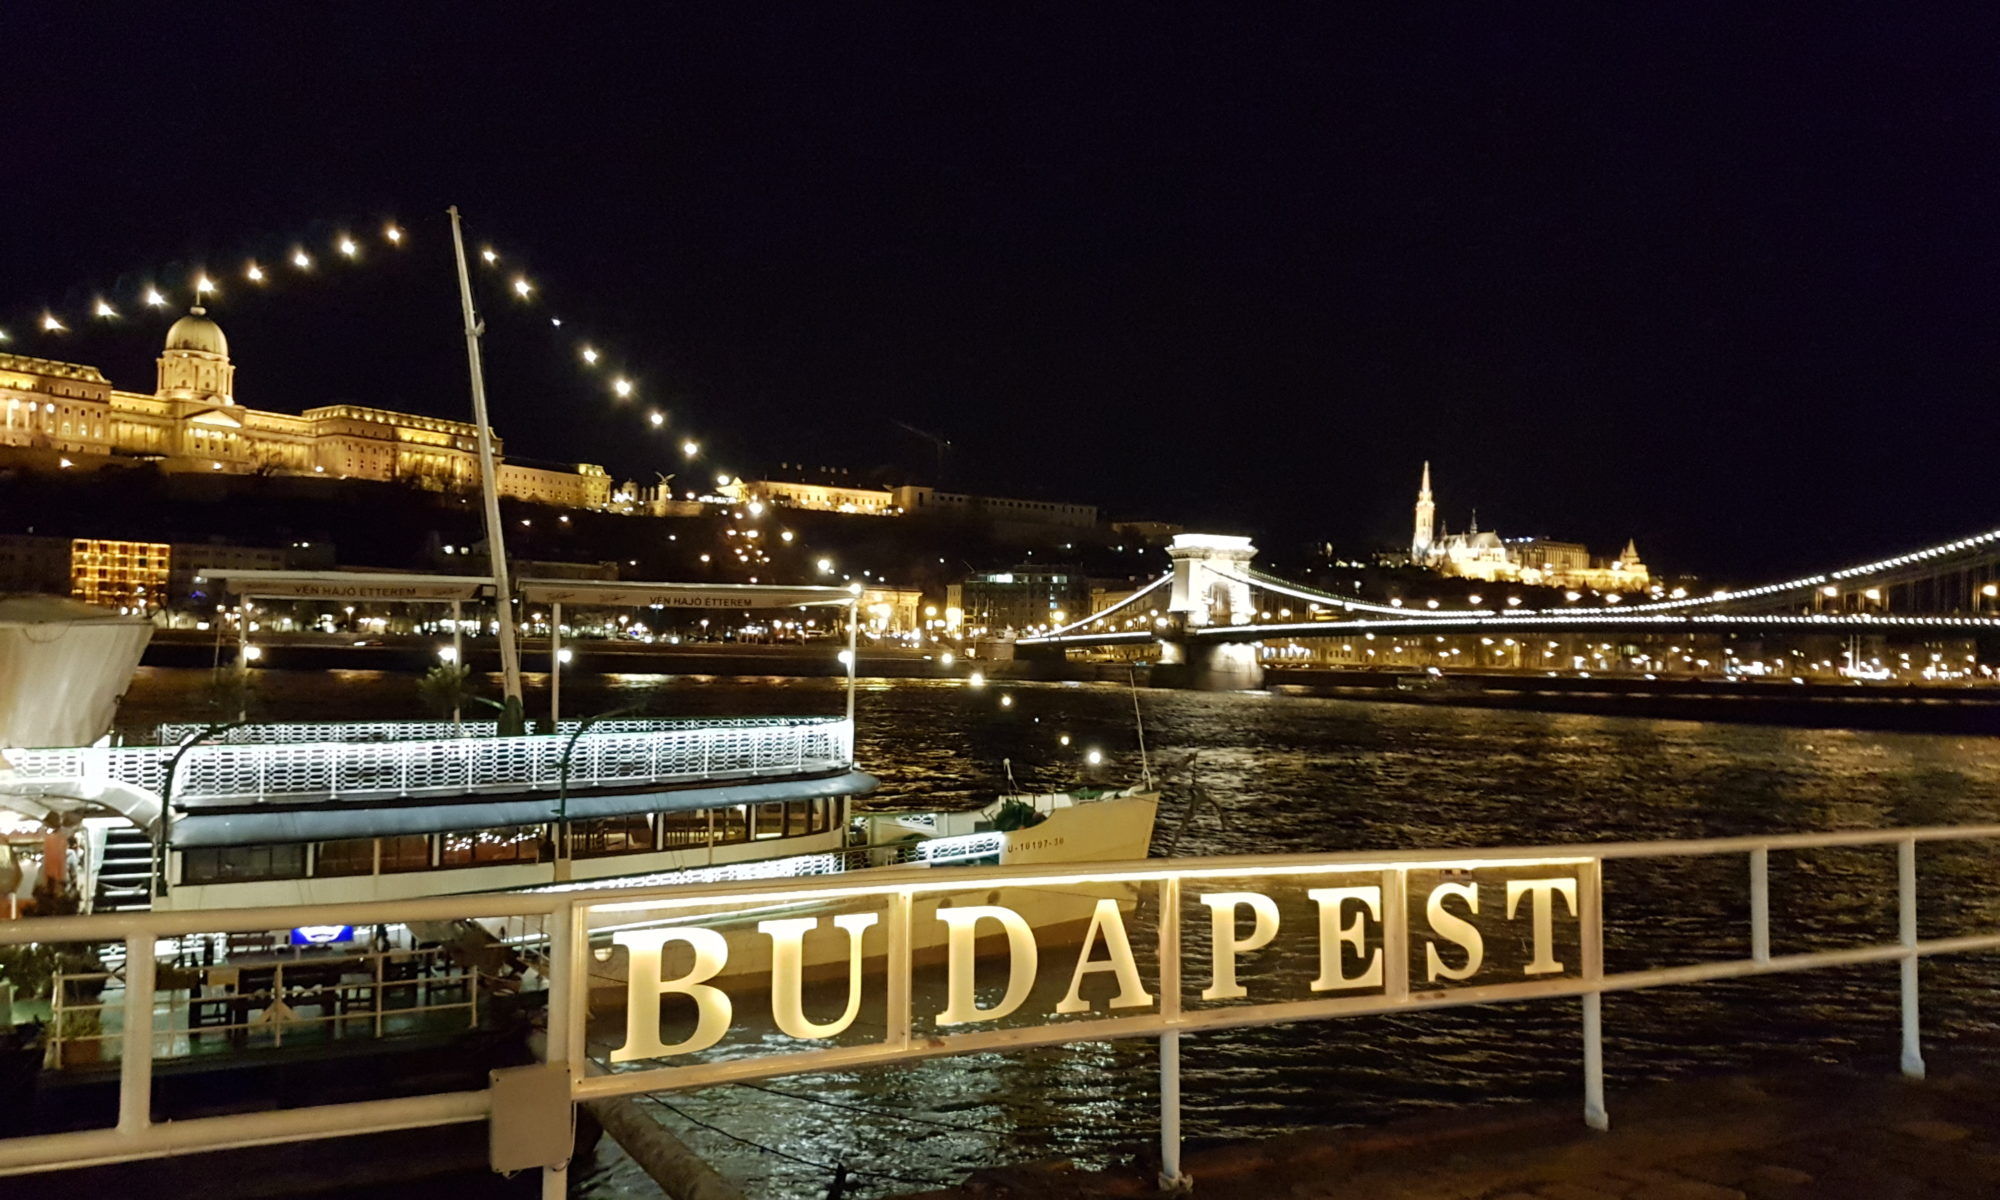 Séjour,Budapest,voyagesurmesure,alacarte,individuels,groupes,rencontre,decouverte,formation,departgarantie,planetsensa,planetreve,caen,mondeville,france,monde,decouverte,culture,rencontre,travel,monument,vakom,bienêtre,valeurspositives,capitale